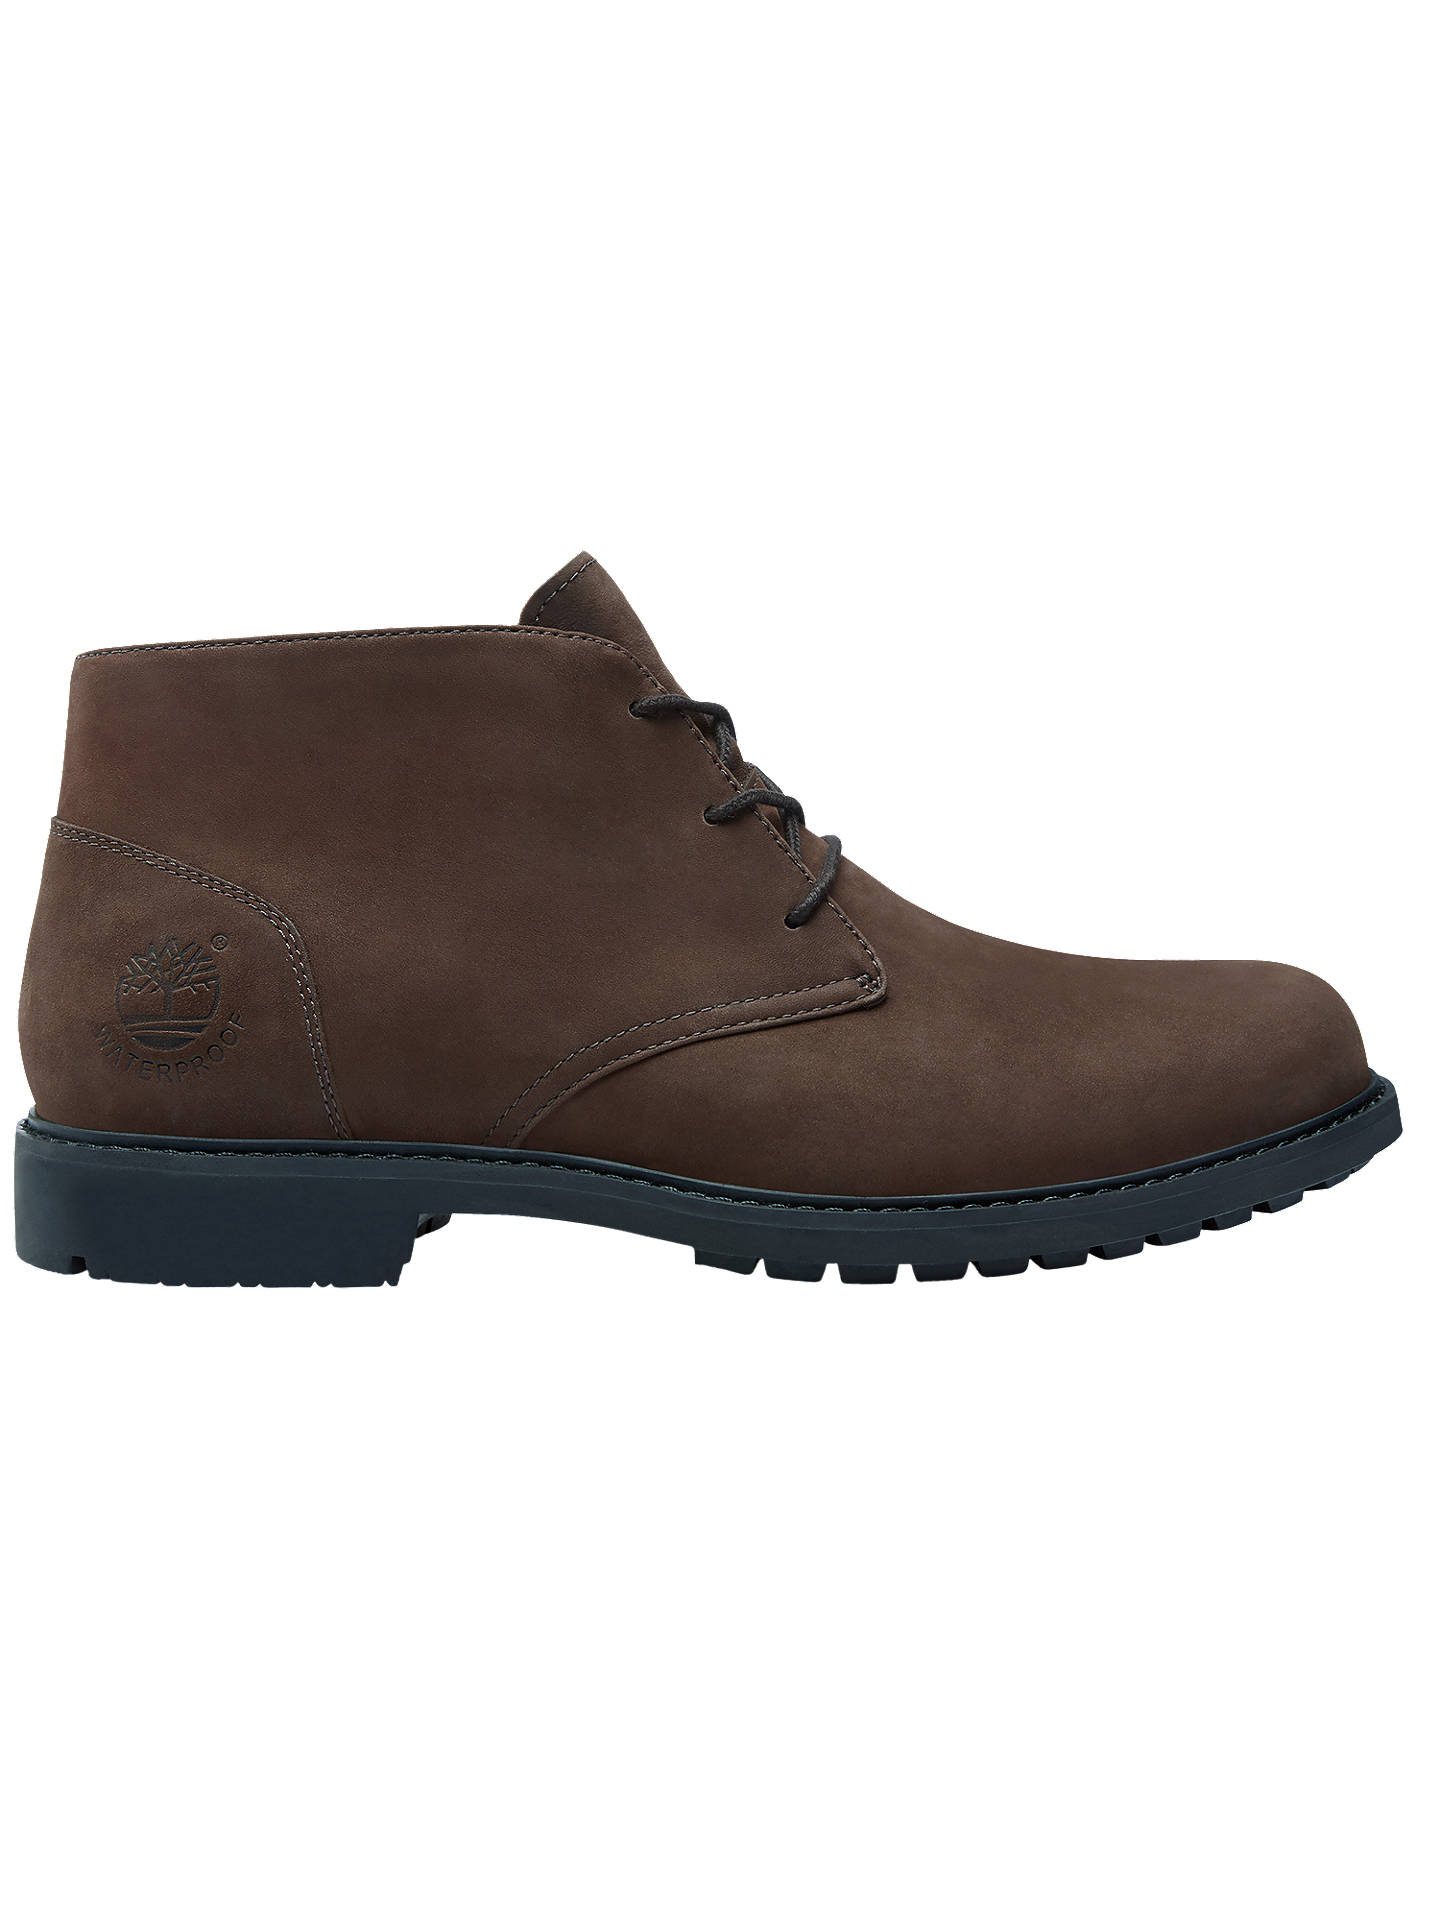 Timberland Stormbuck Waterproof Chukka Boots, Dark Brown at